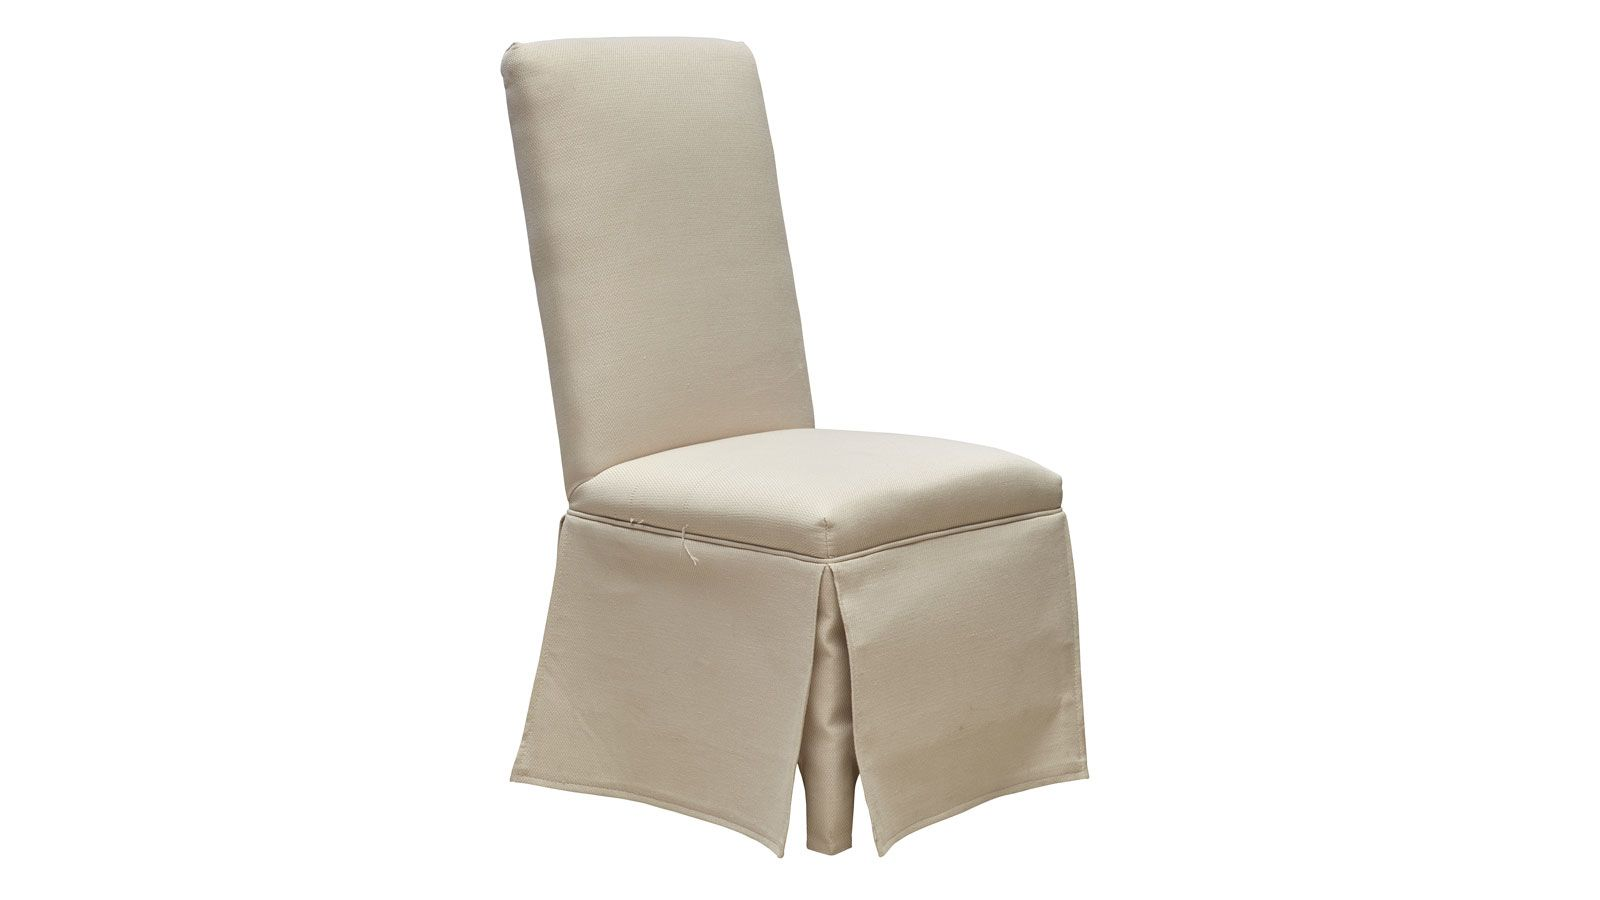 parson chairs cheap unusual shaped chair westminster skirted parsons bellaire